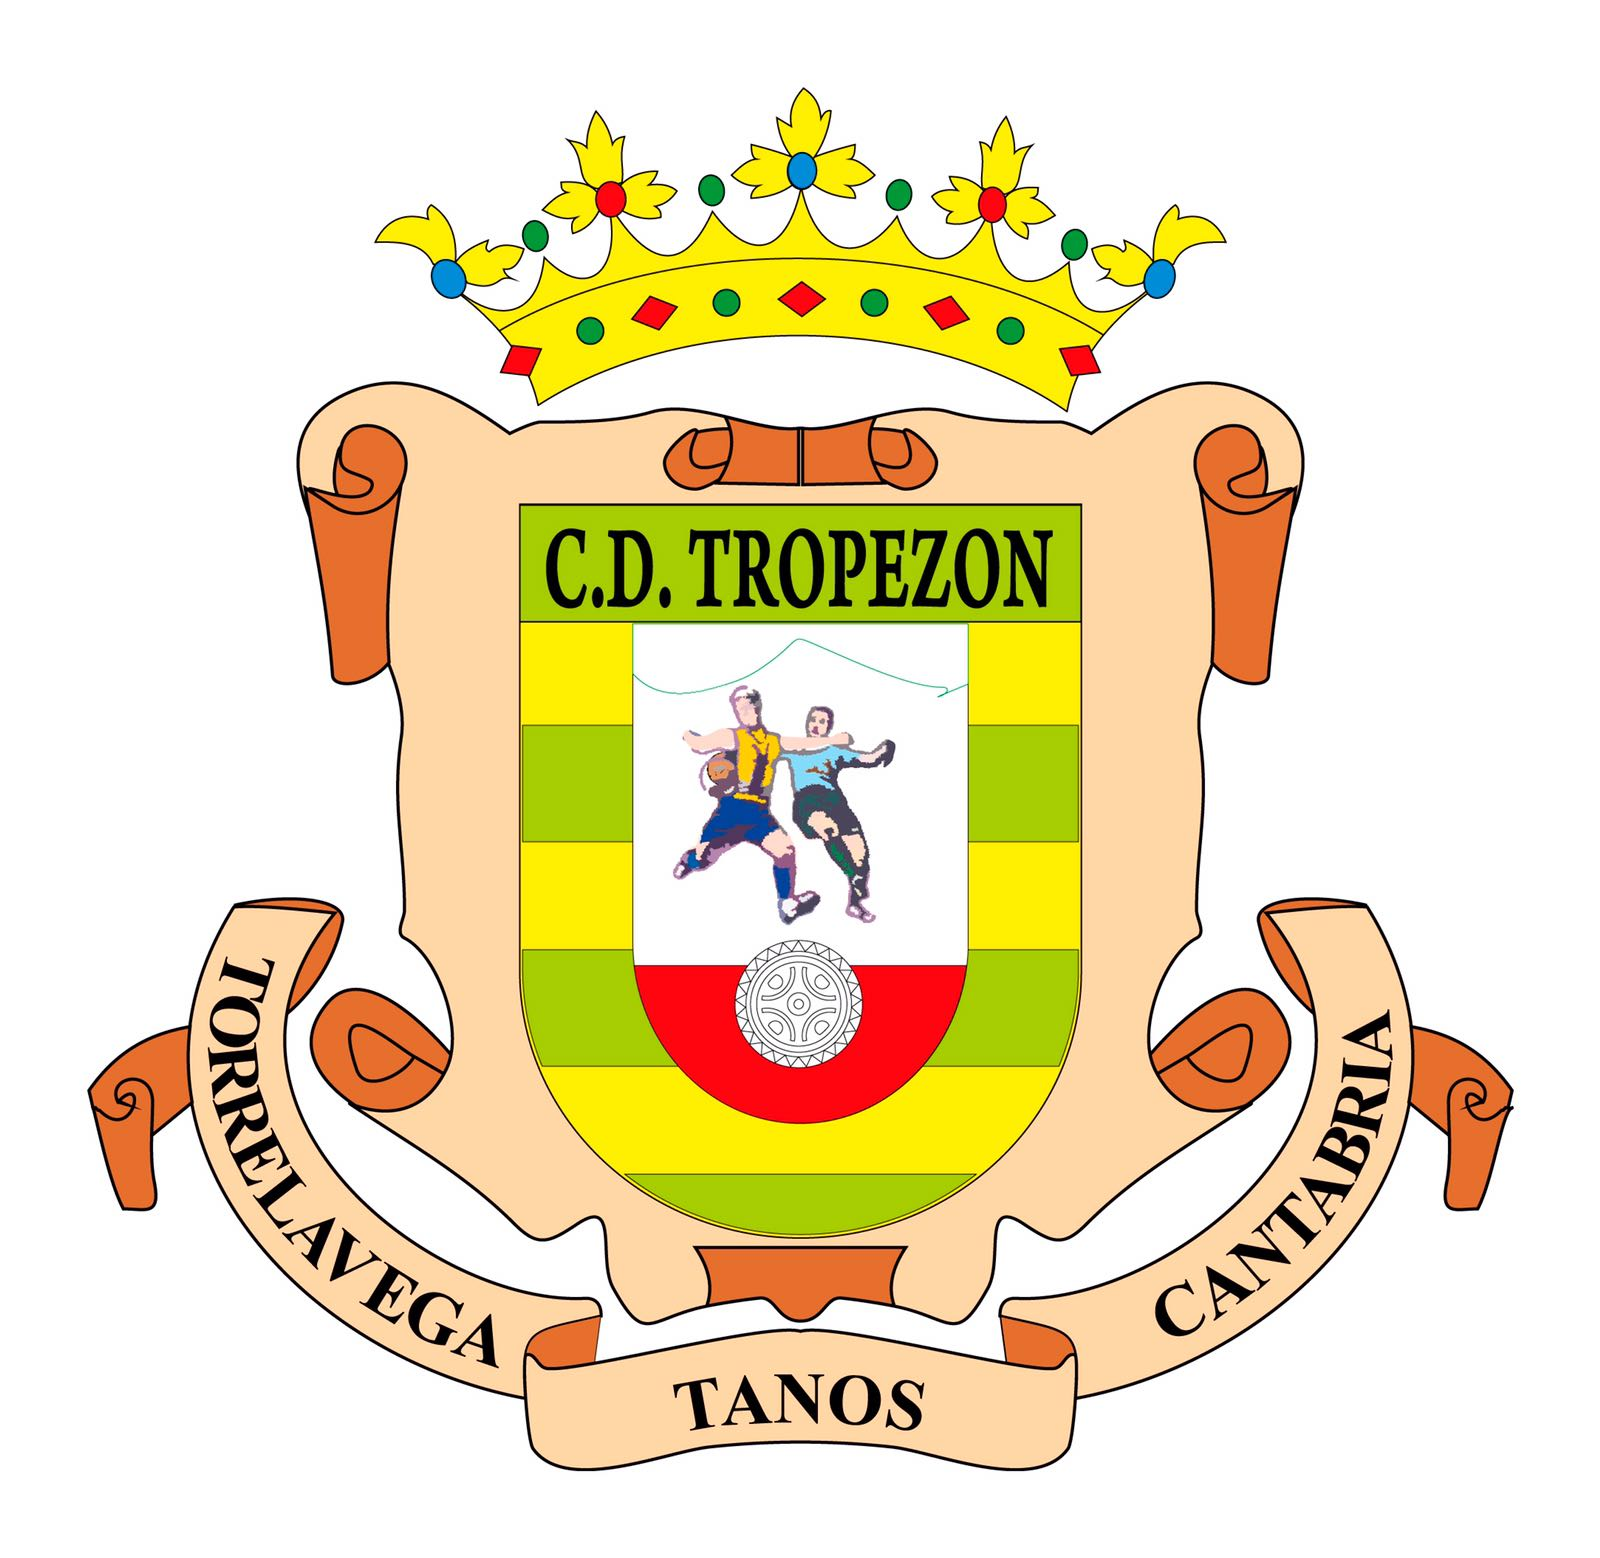 CD TROPEZON